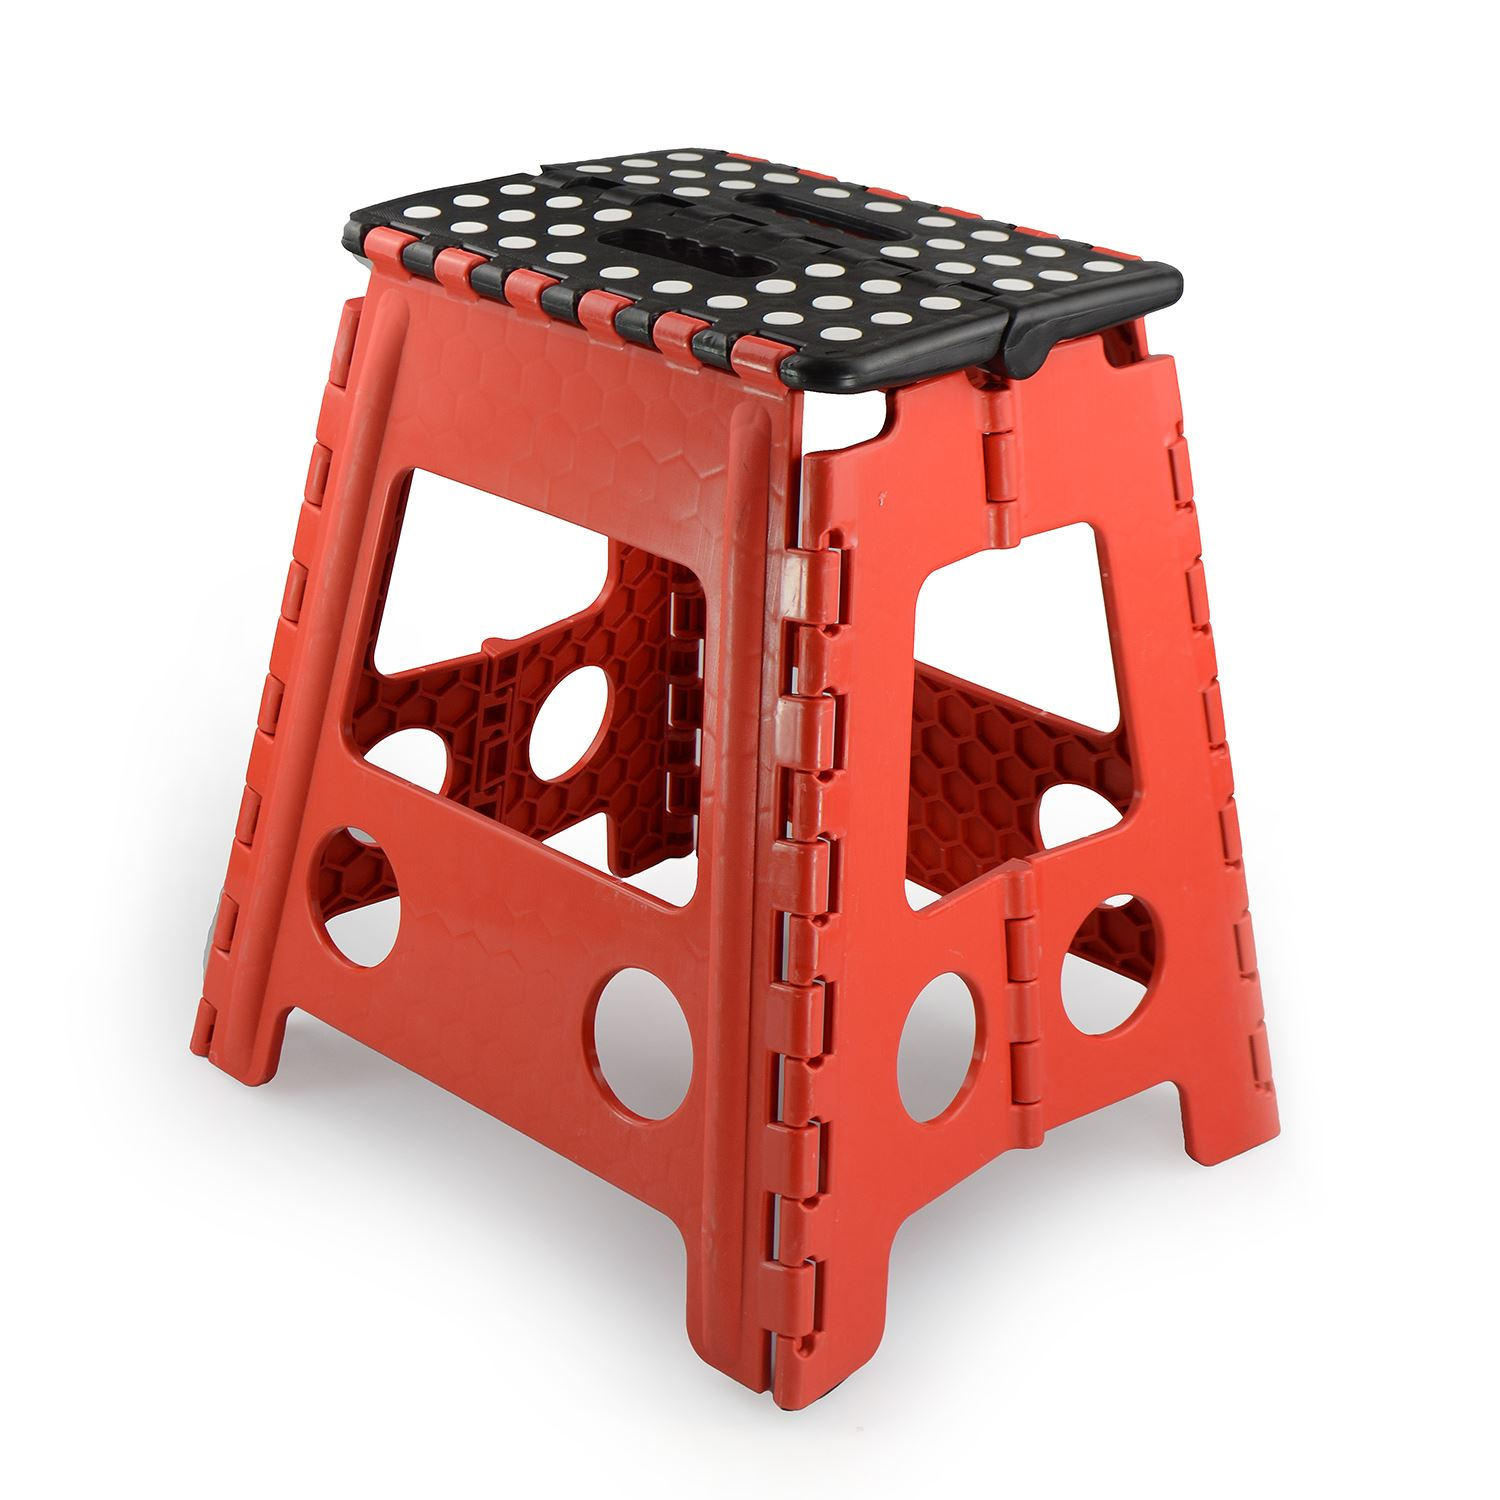 New Plastic Multi Purpose Folding Step Stool Home Kitchen